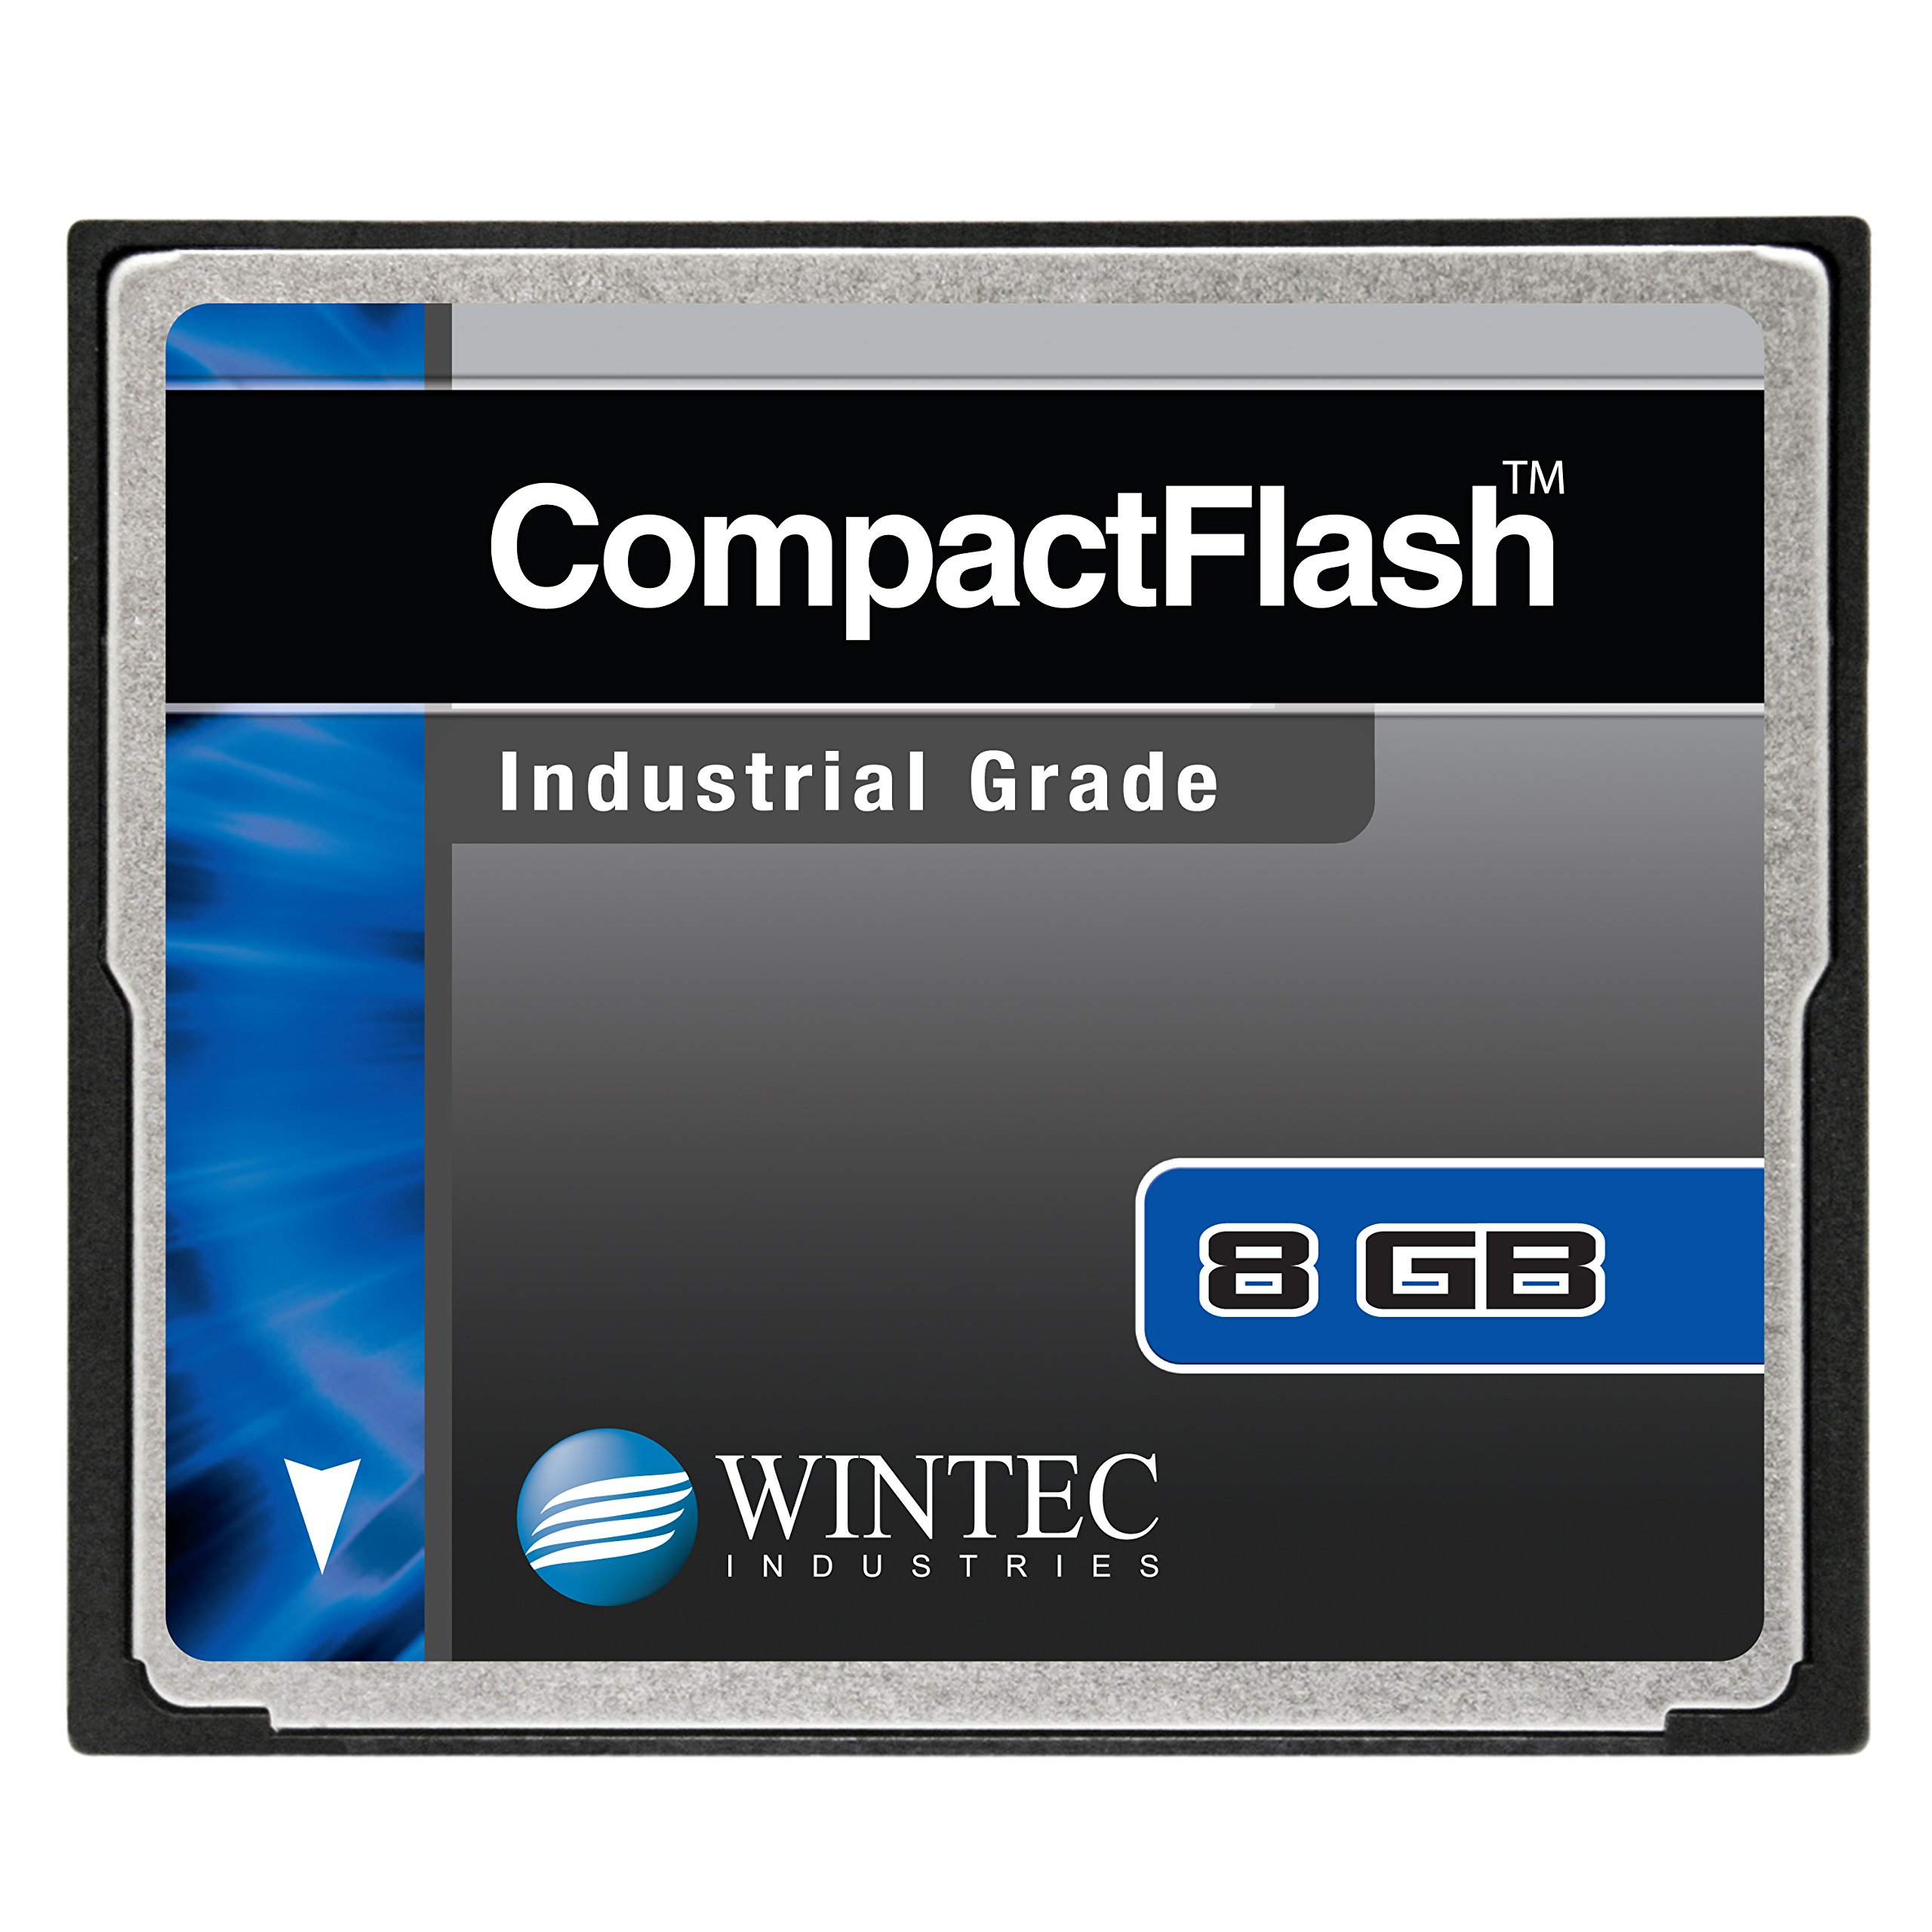 Wintec Compact Flash Card Industrial Grade SLC Nand 8GB, Black (33100008GCF)